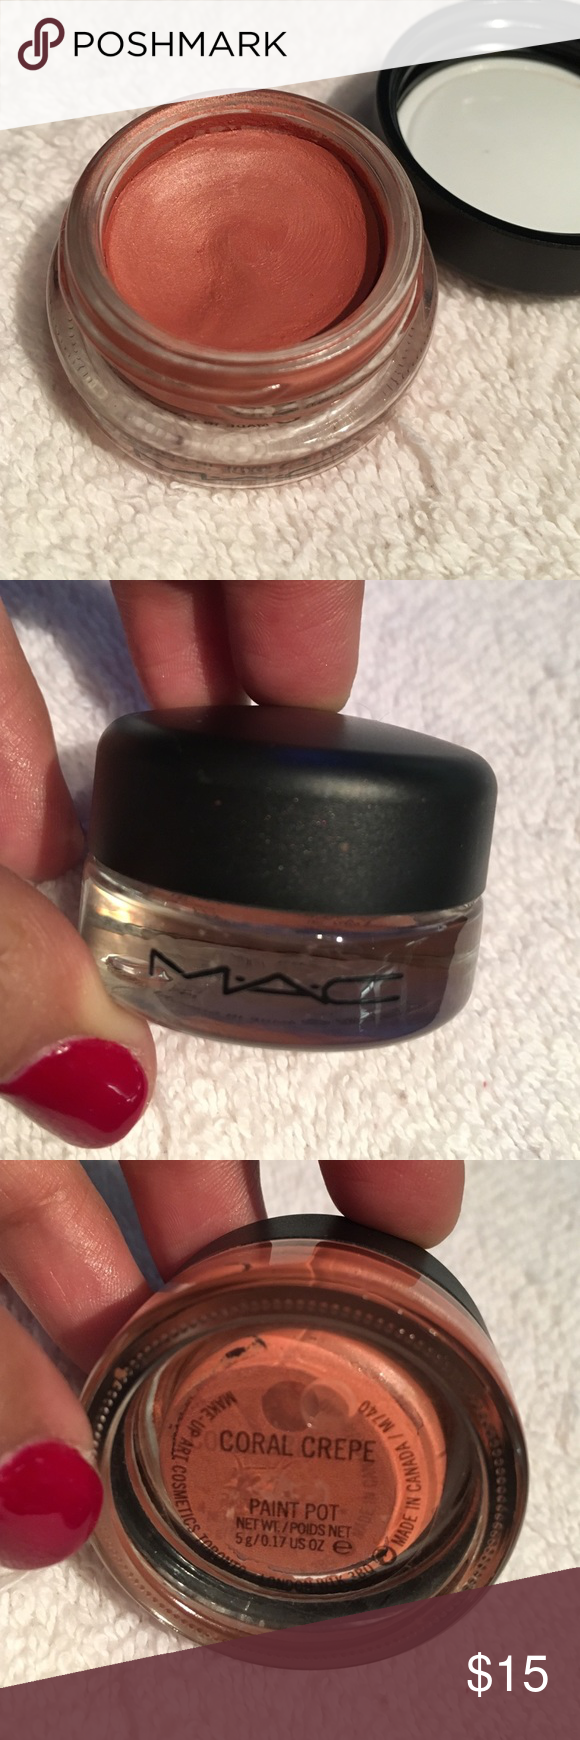 MAC paint pot in Coral Crepe. Gently used Mac paint pots